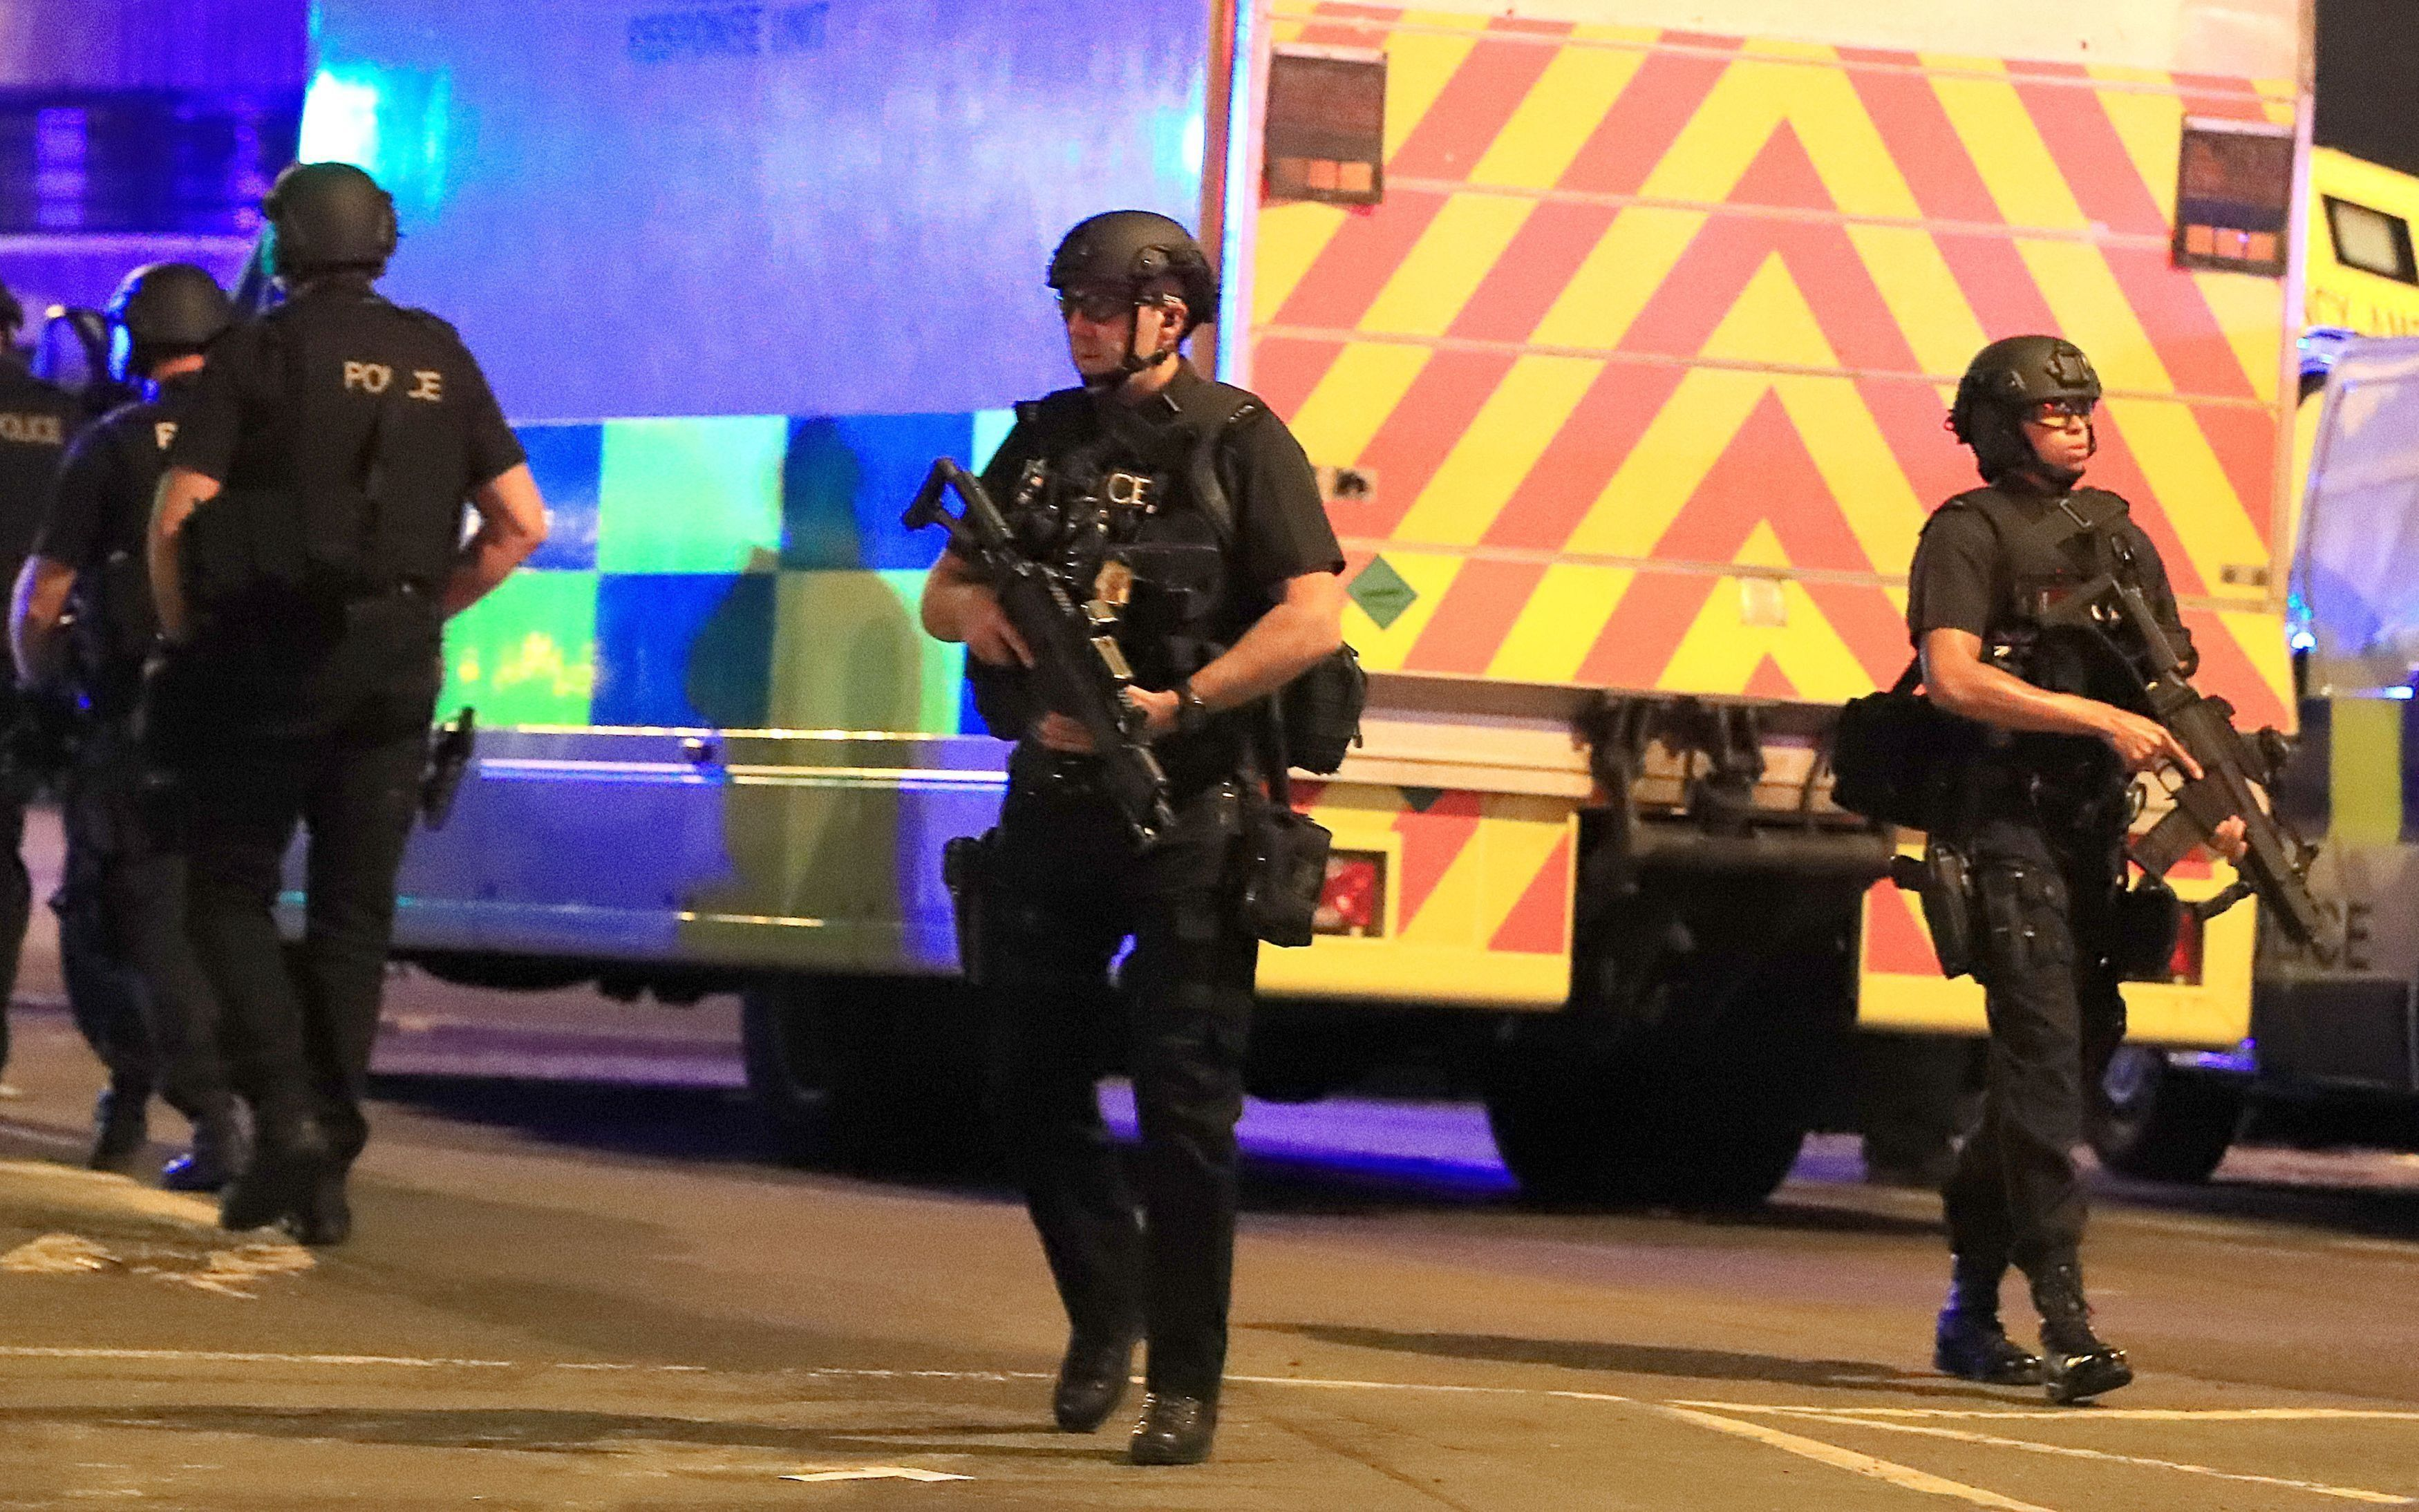 What We Know So Far About Manchester Bombing Suspect Salman